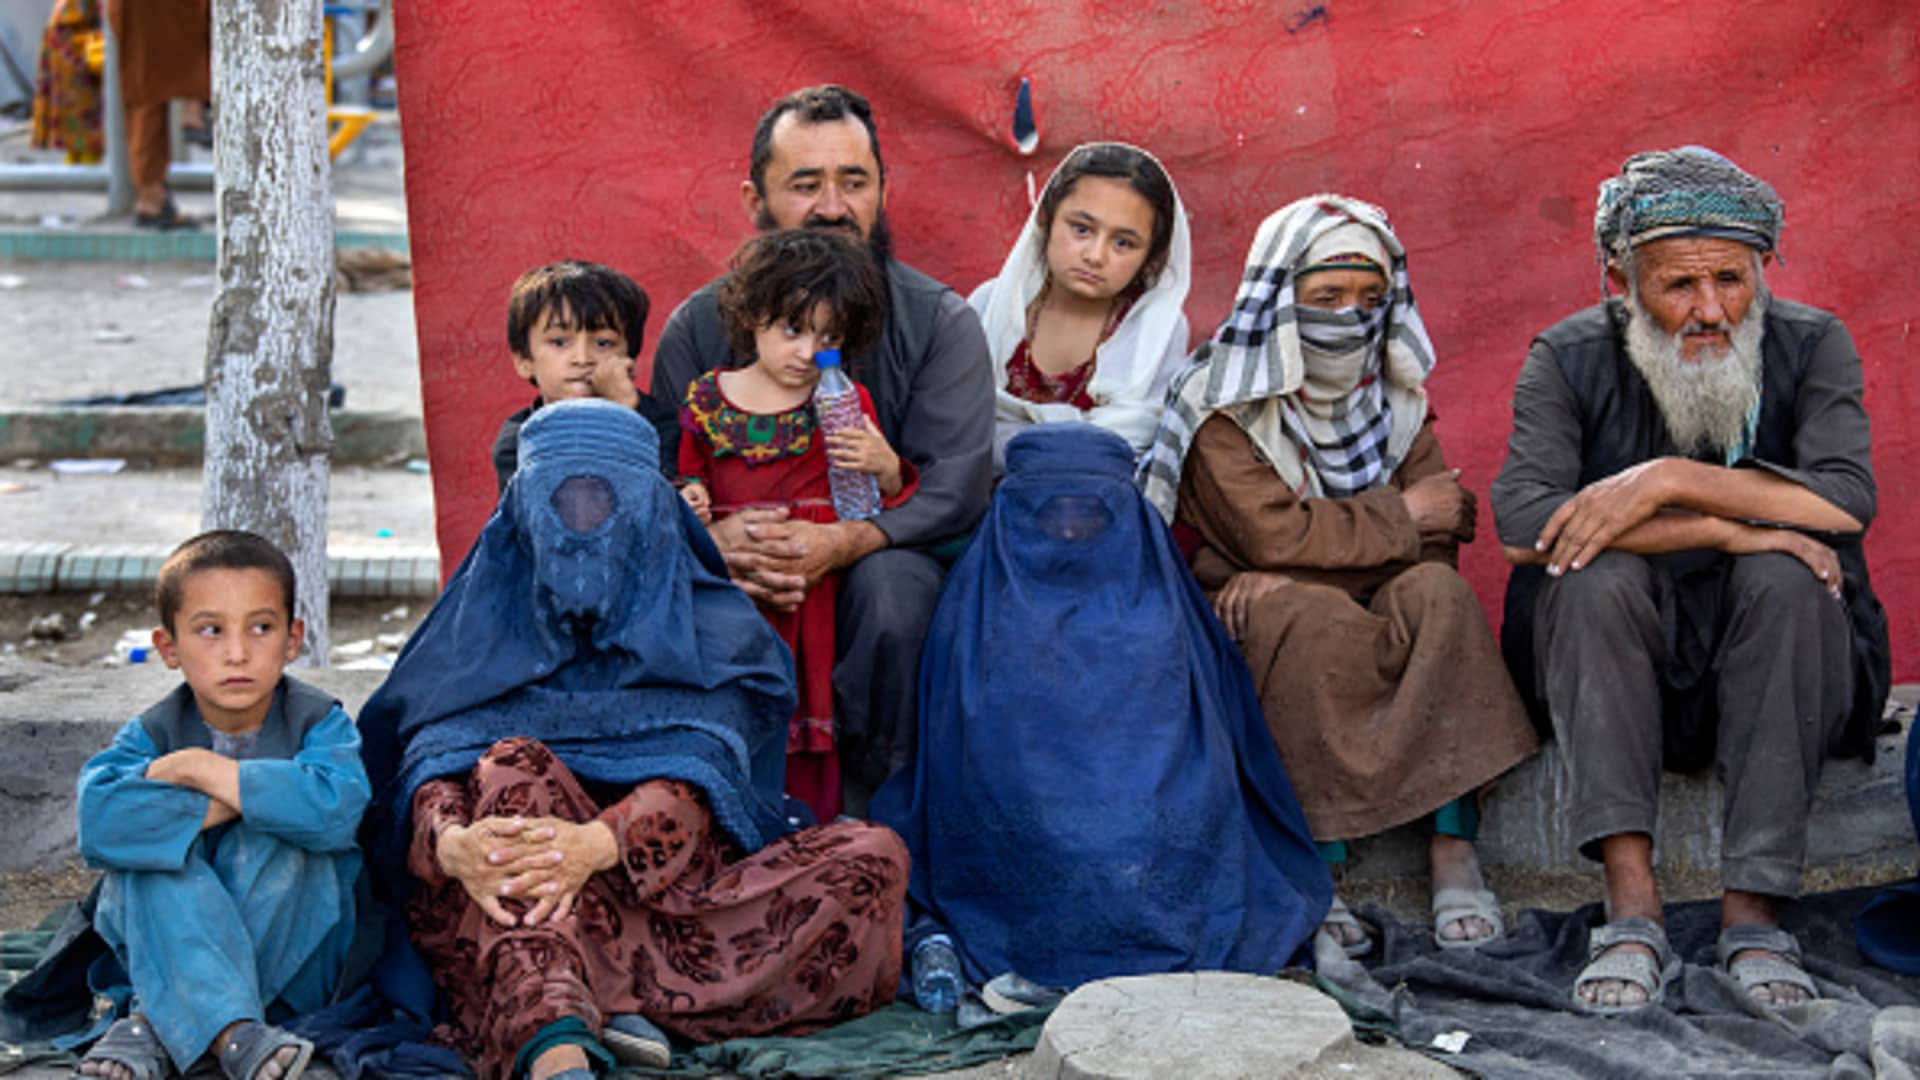 Charyar,70, from the Balkh province sits alongside his family at a makeshift IDP camp in Share-e-Naw park to various mosques and schools on August 12, 2021 in Kabul, Afghanistan.